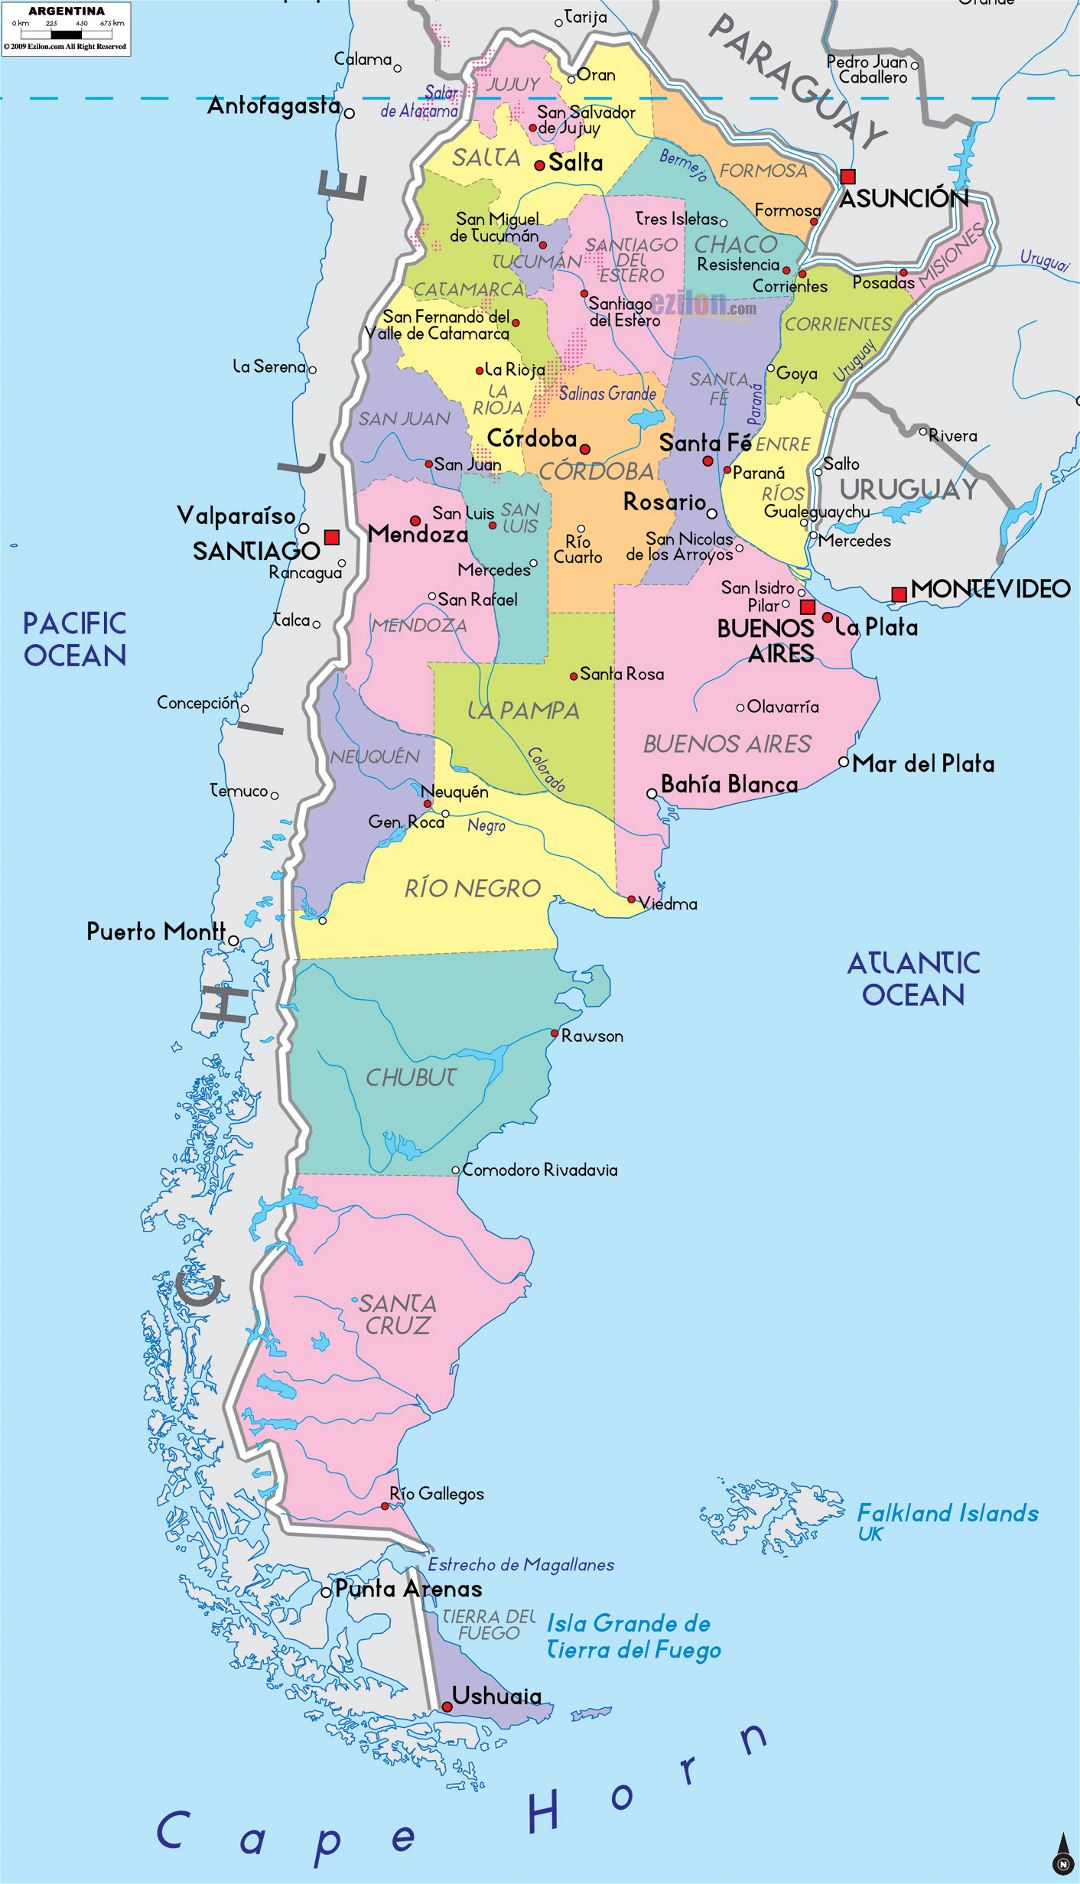 Large political and administrative map of Argentina with major cities